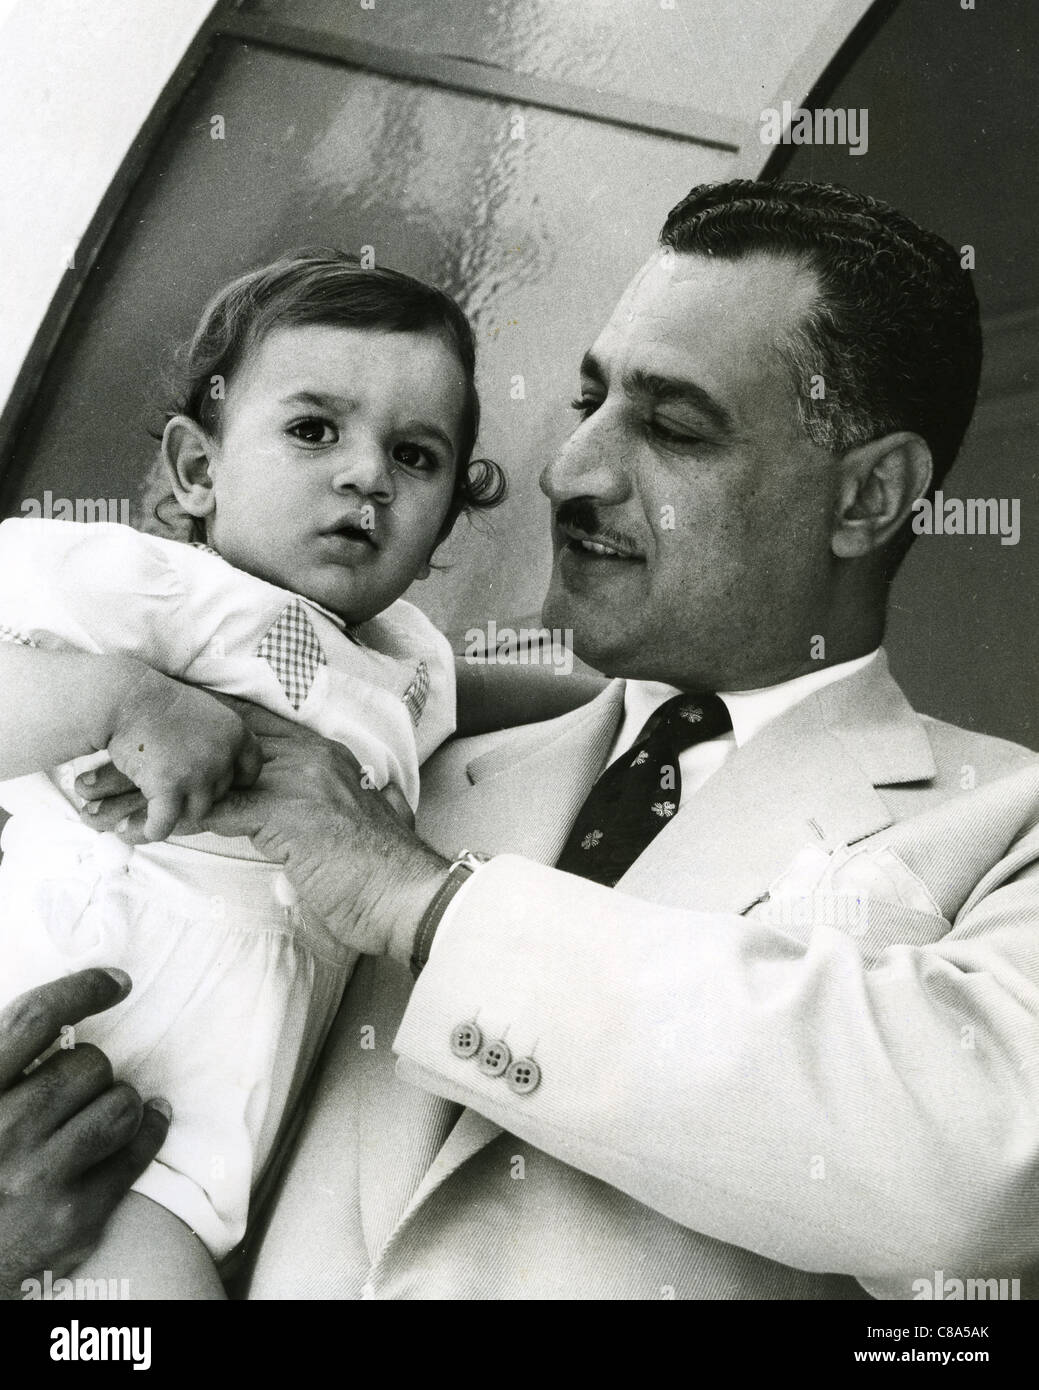 GAMAL ABDEL NASSER (1918-1970) second President of Egypt with one of his three sons - Stock Image